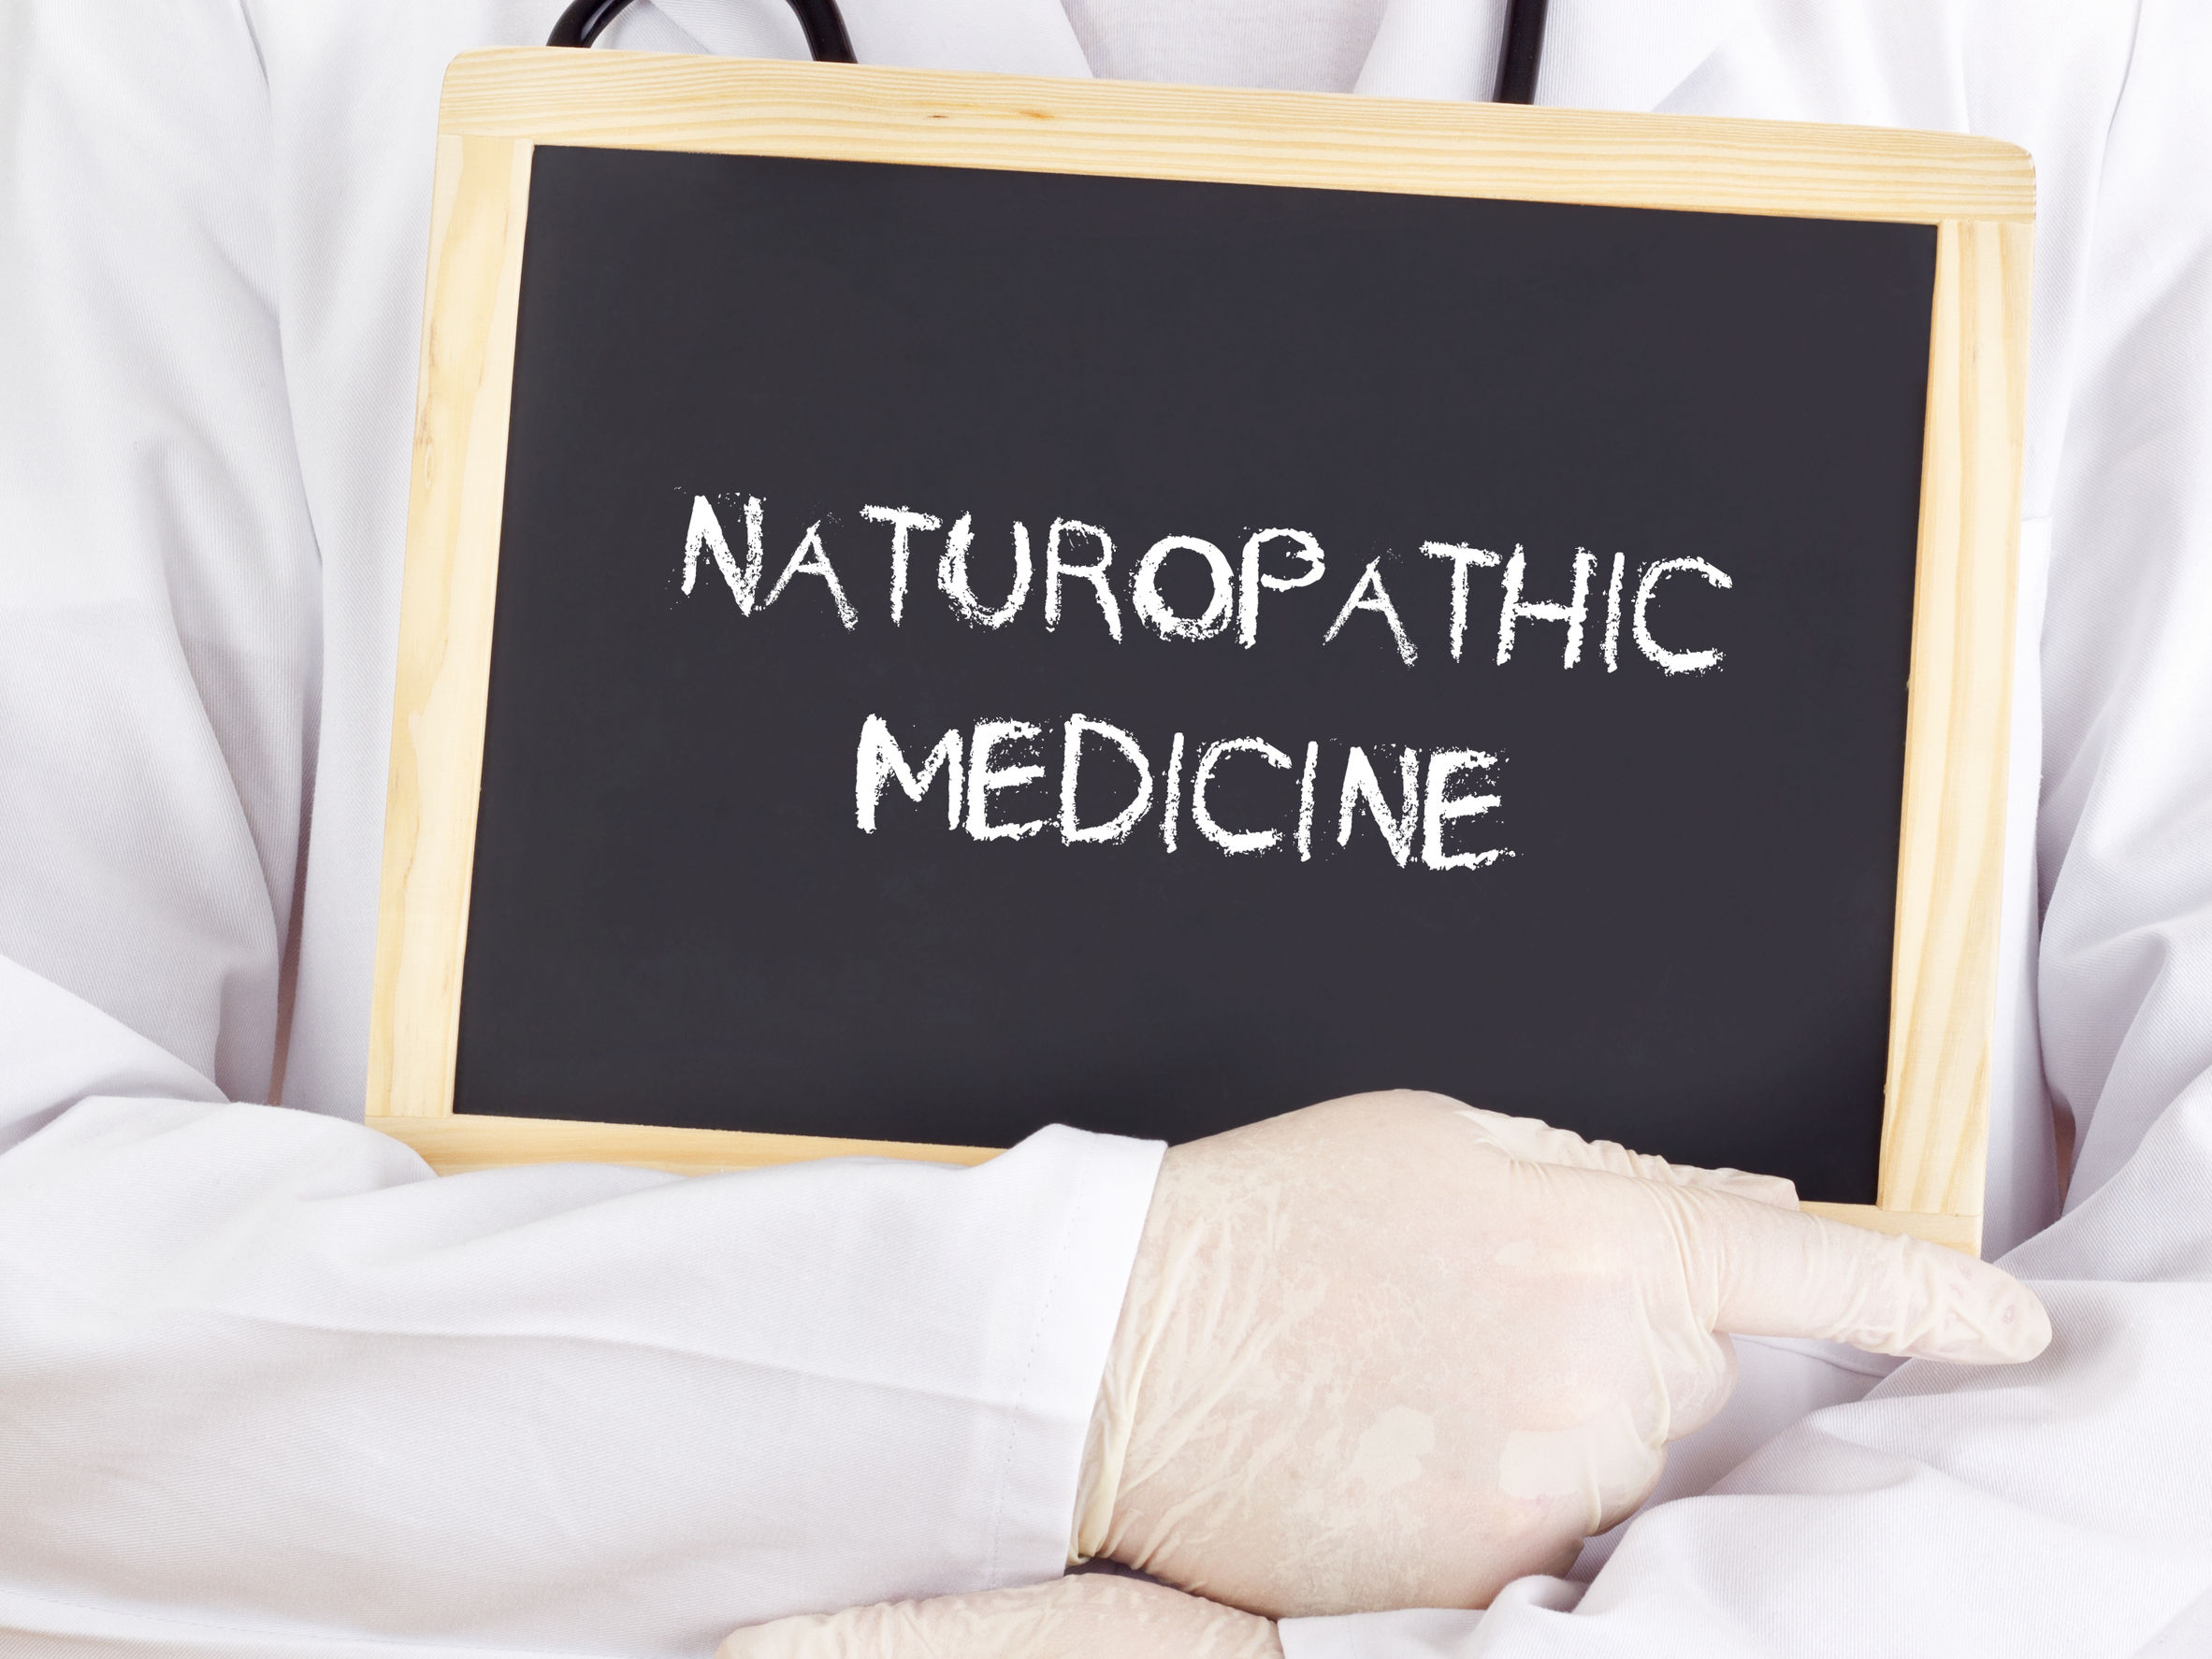 39279617 - doctor shows information: naturopathic medicine